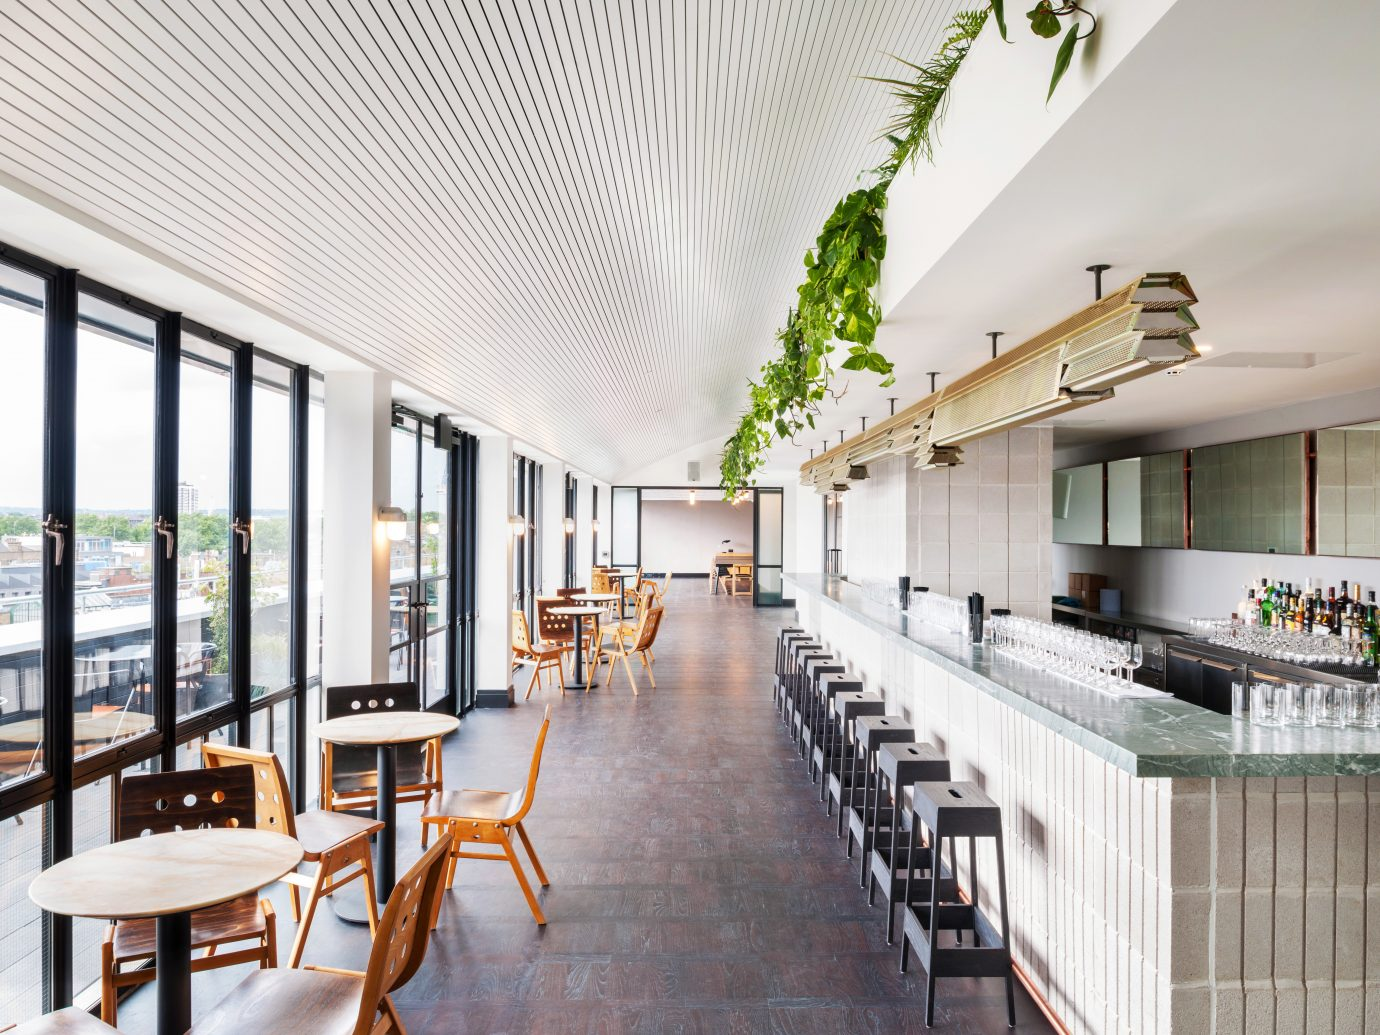 Balcony Budget Dining Drink Eat Hotels London indoor floor property room building Lobby Architecture condominium interior design estate real estate home furniture headquarters Design hall window covering ceiling